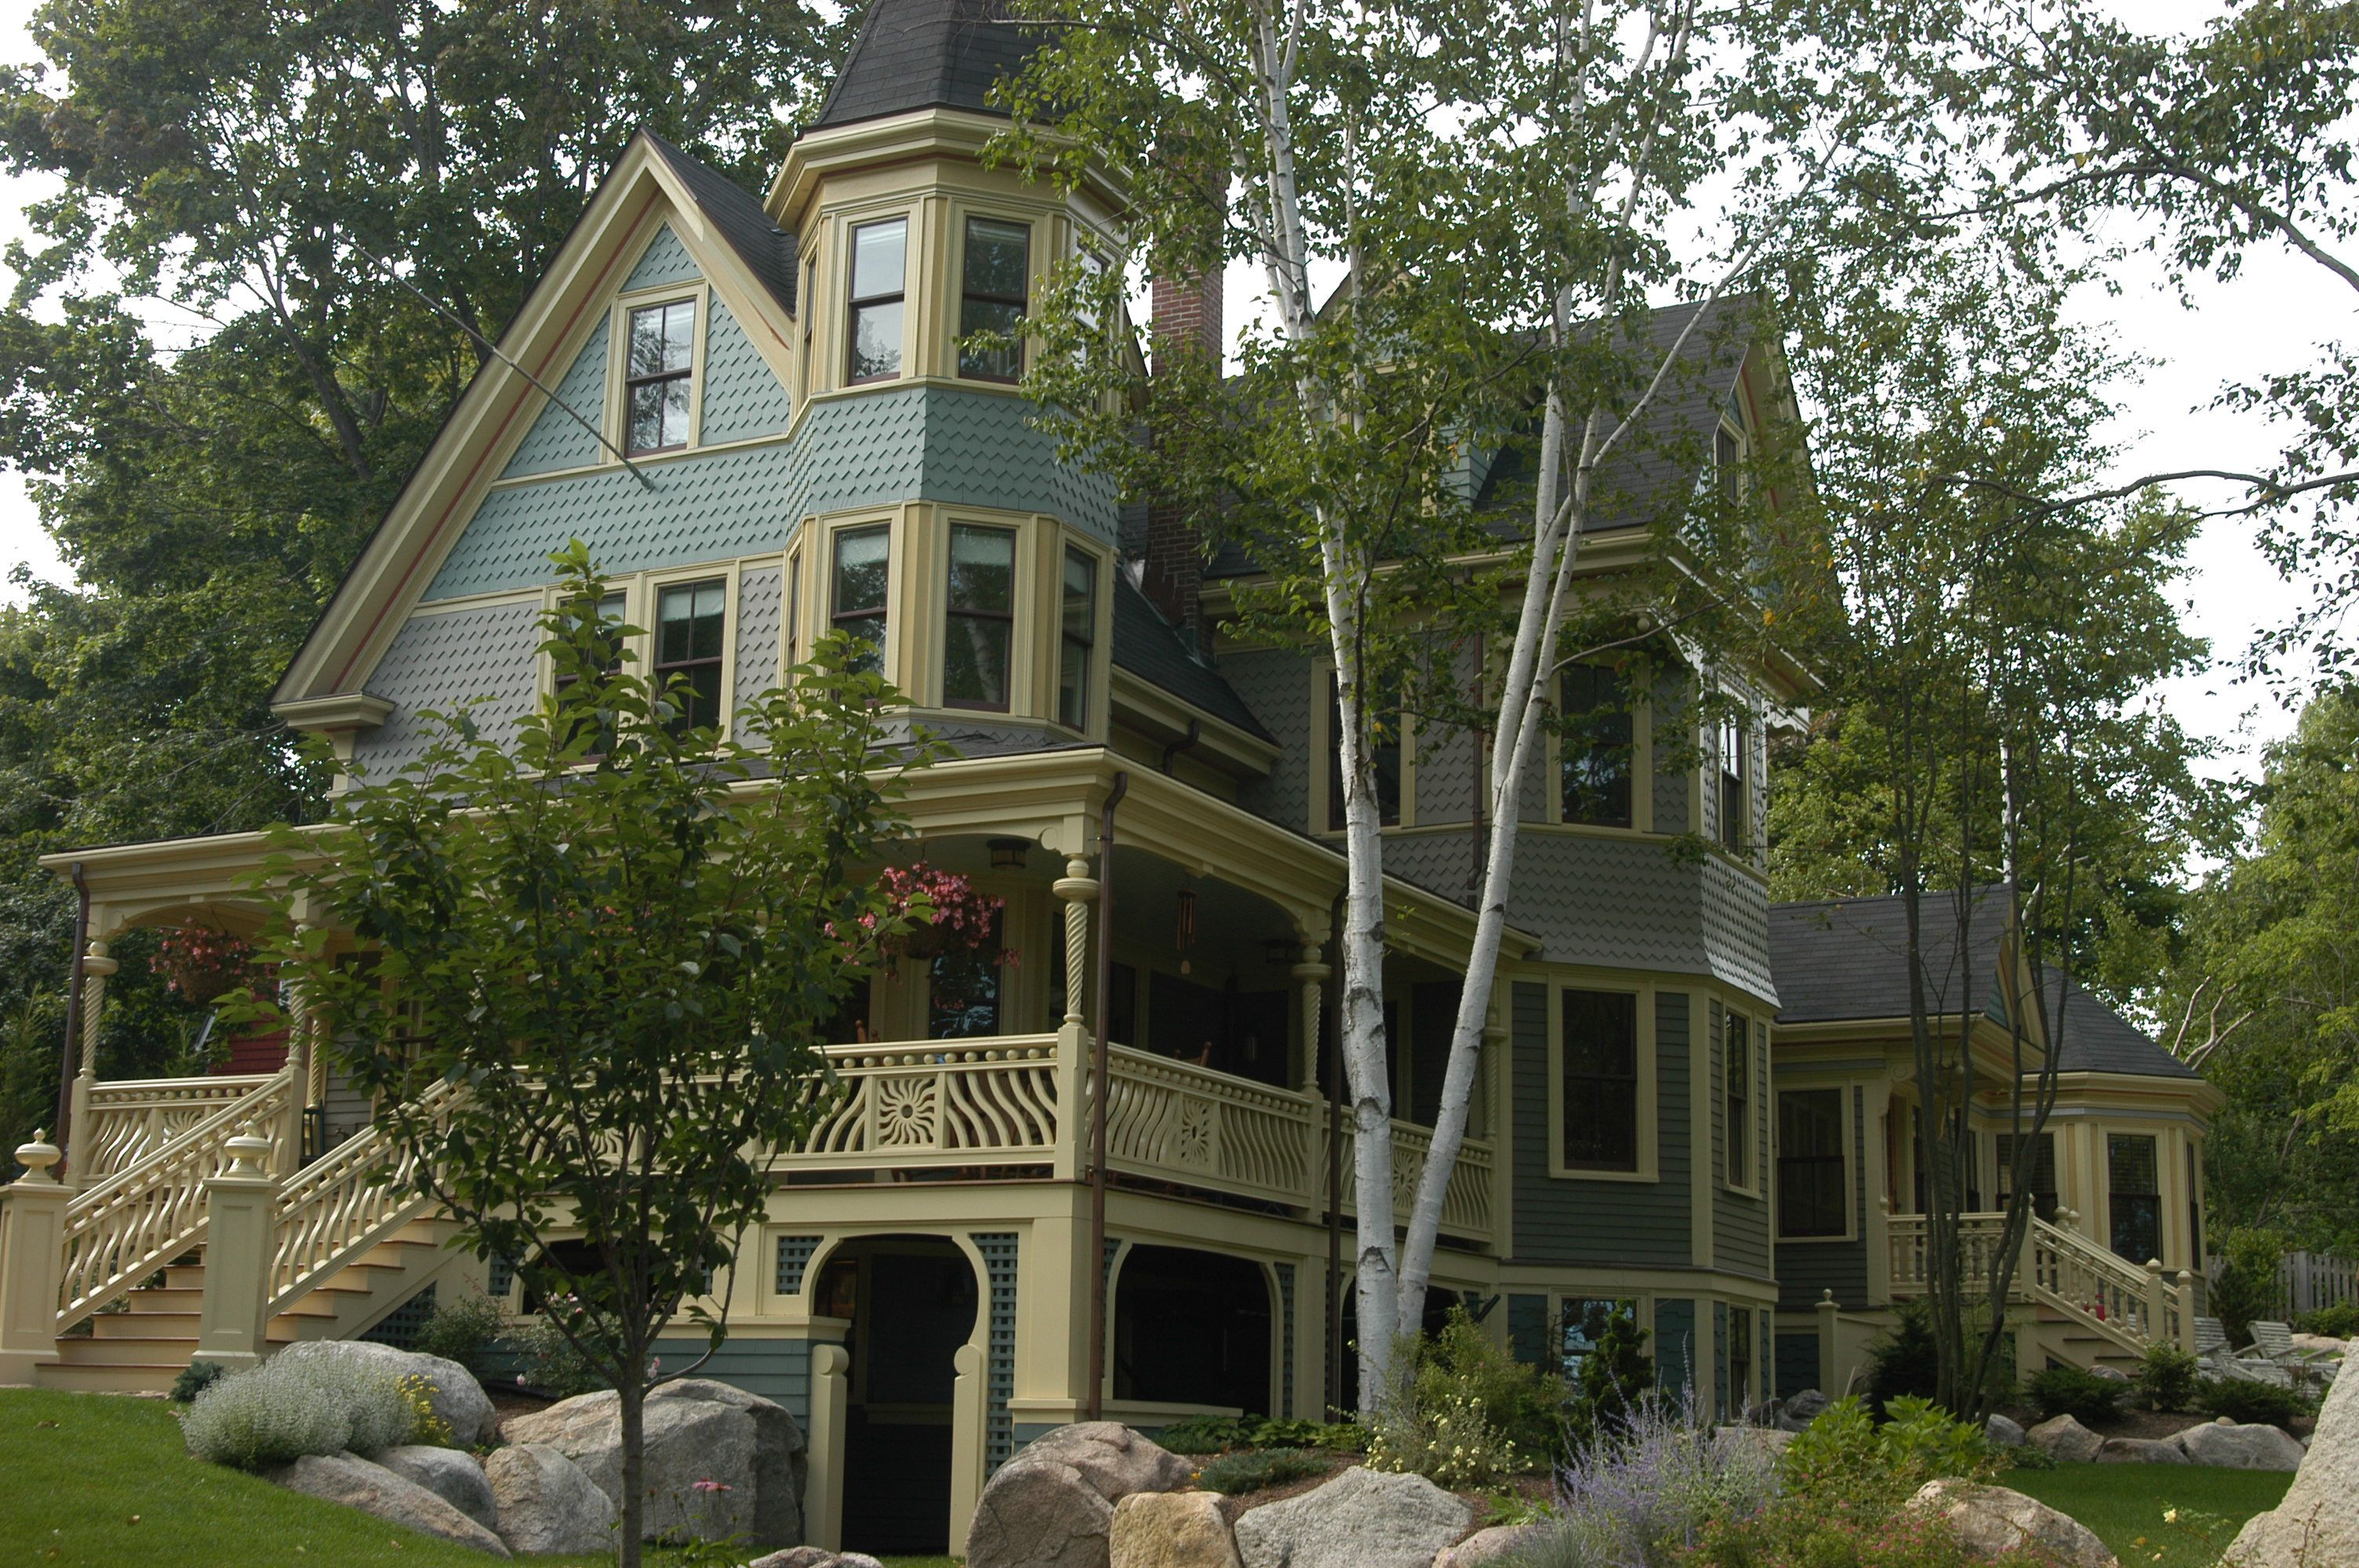 Magnificent 17 Best Images About Historic New England Homes On Pinterest Largest Home Design Picture Inspirations Pitcheantrous